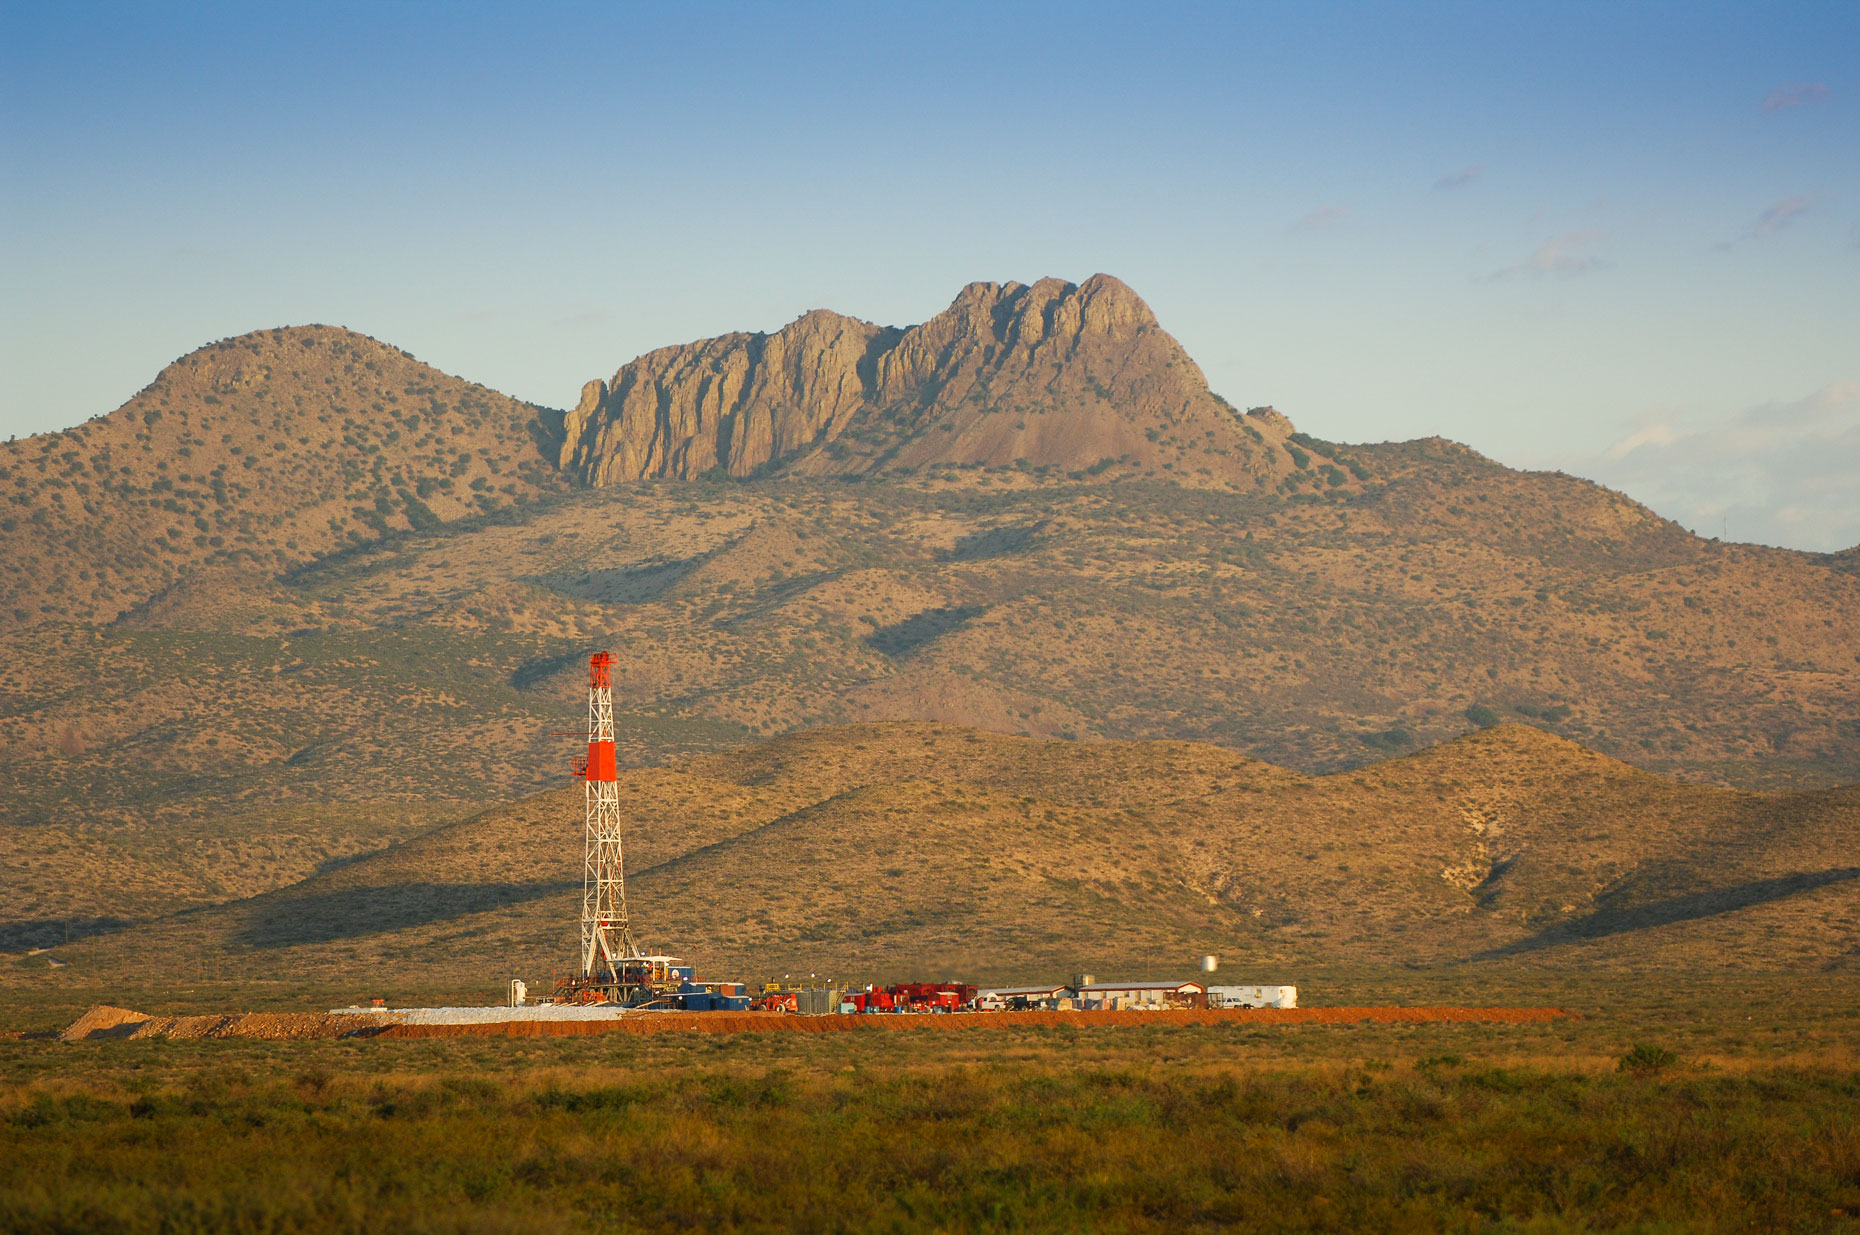 West Texas oil rig, near the Davis mountains, photographed by Kevin Brown.